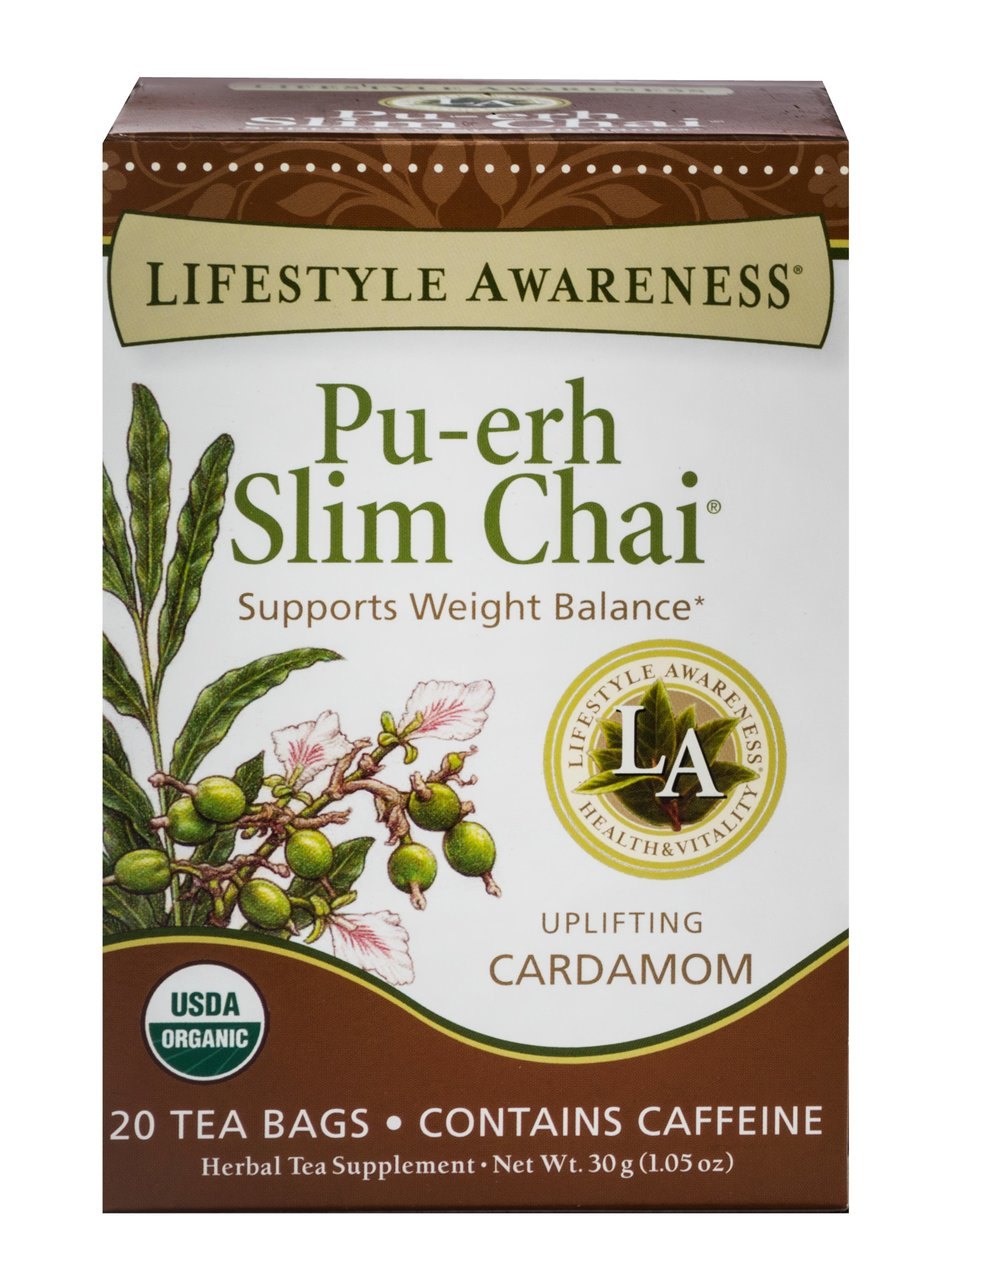 Organic Pu-erh Slim Chai Tea Thumbnail Alternate Bottle View